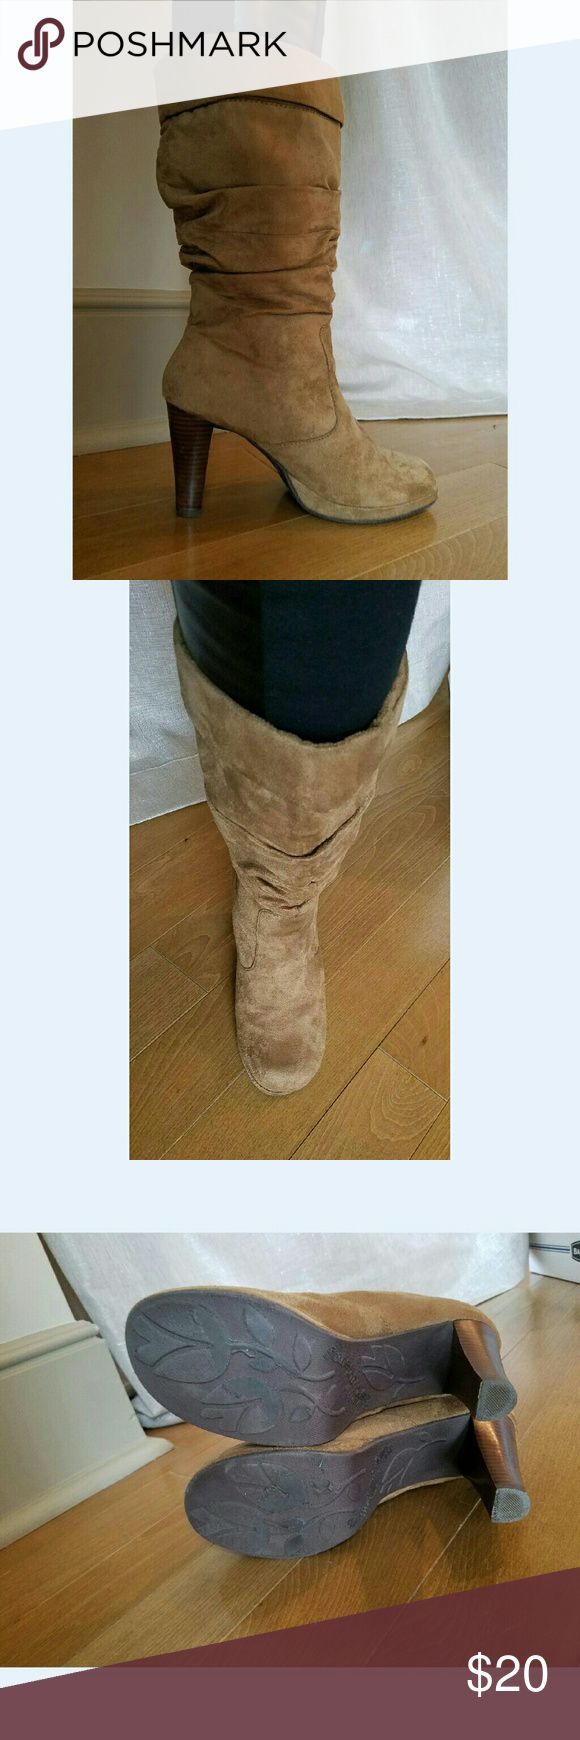 Somethin Else from Skechers Camel Slouch Boots Very cute boots - worn twice - faux suede upper - size 8 - heel is 3.5 inches high and there is a 1/4 inch platform in the front -rounded toe - from the top of the heel in the back to the top of the boot is 11 inches. I ordered these online from Victoria's Secret. The color is like the first three picks the one with the Buckle is much lighter I just wanted to show the Buckle detail. No trades please. Somethin Else from Skechers Shoes Platforms